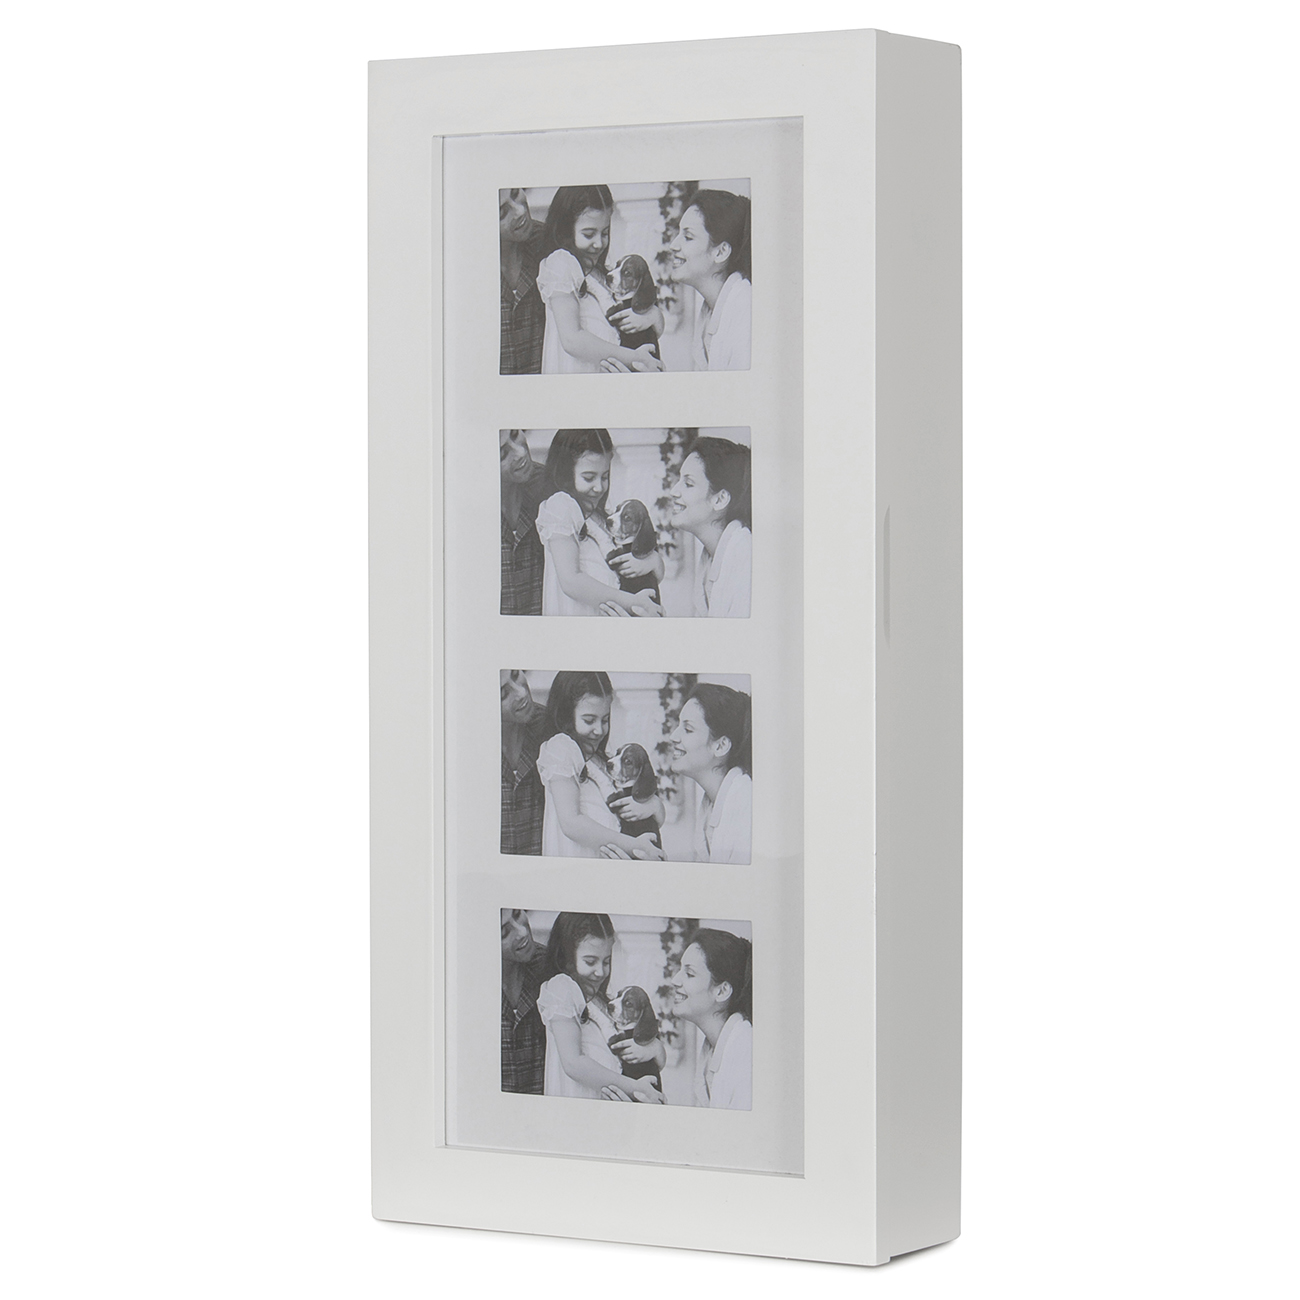 Photo Display Wall Mount Jewelry Armoire Cabinet White 791090710077